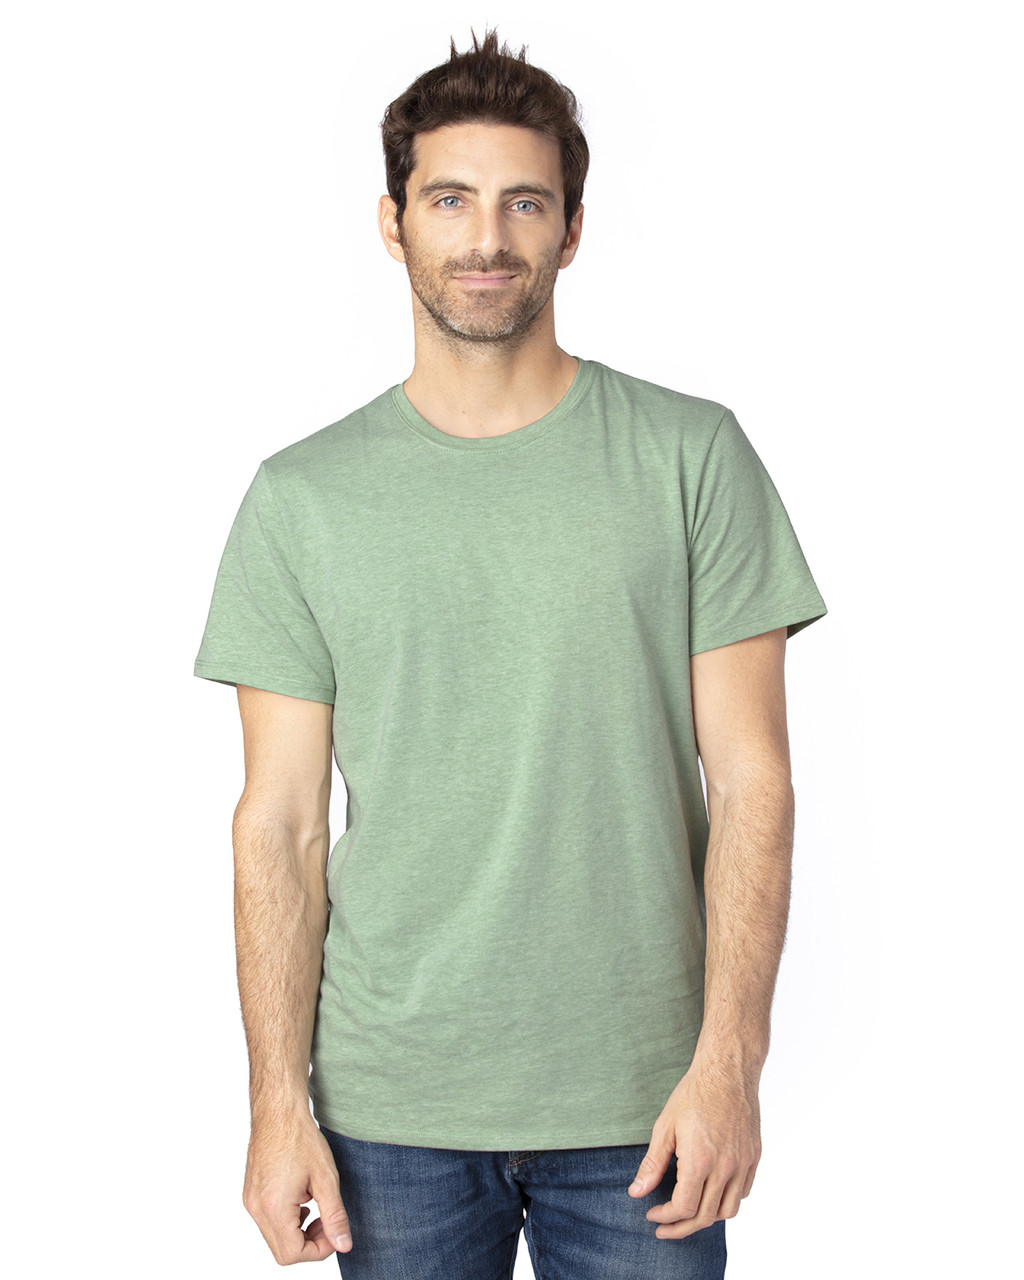 Army Heather - 100A Threadfast Unisex Ultimate Short-Sleeve T-Shirt | BlankClothing.ca